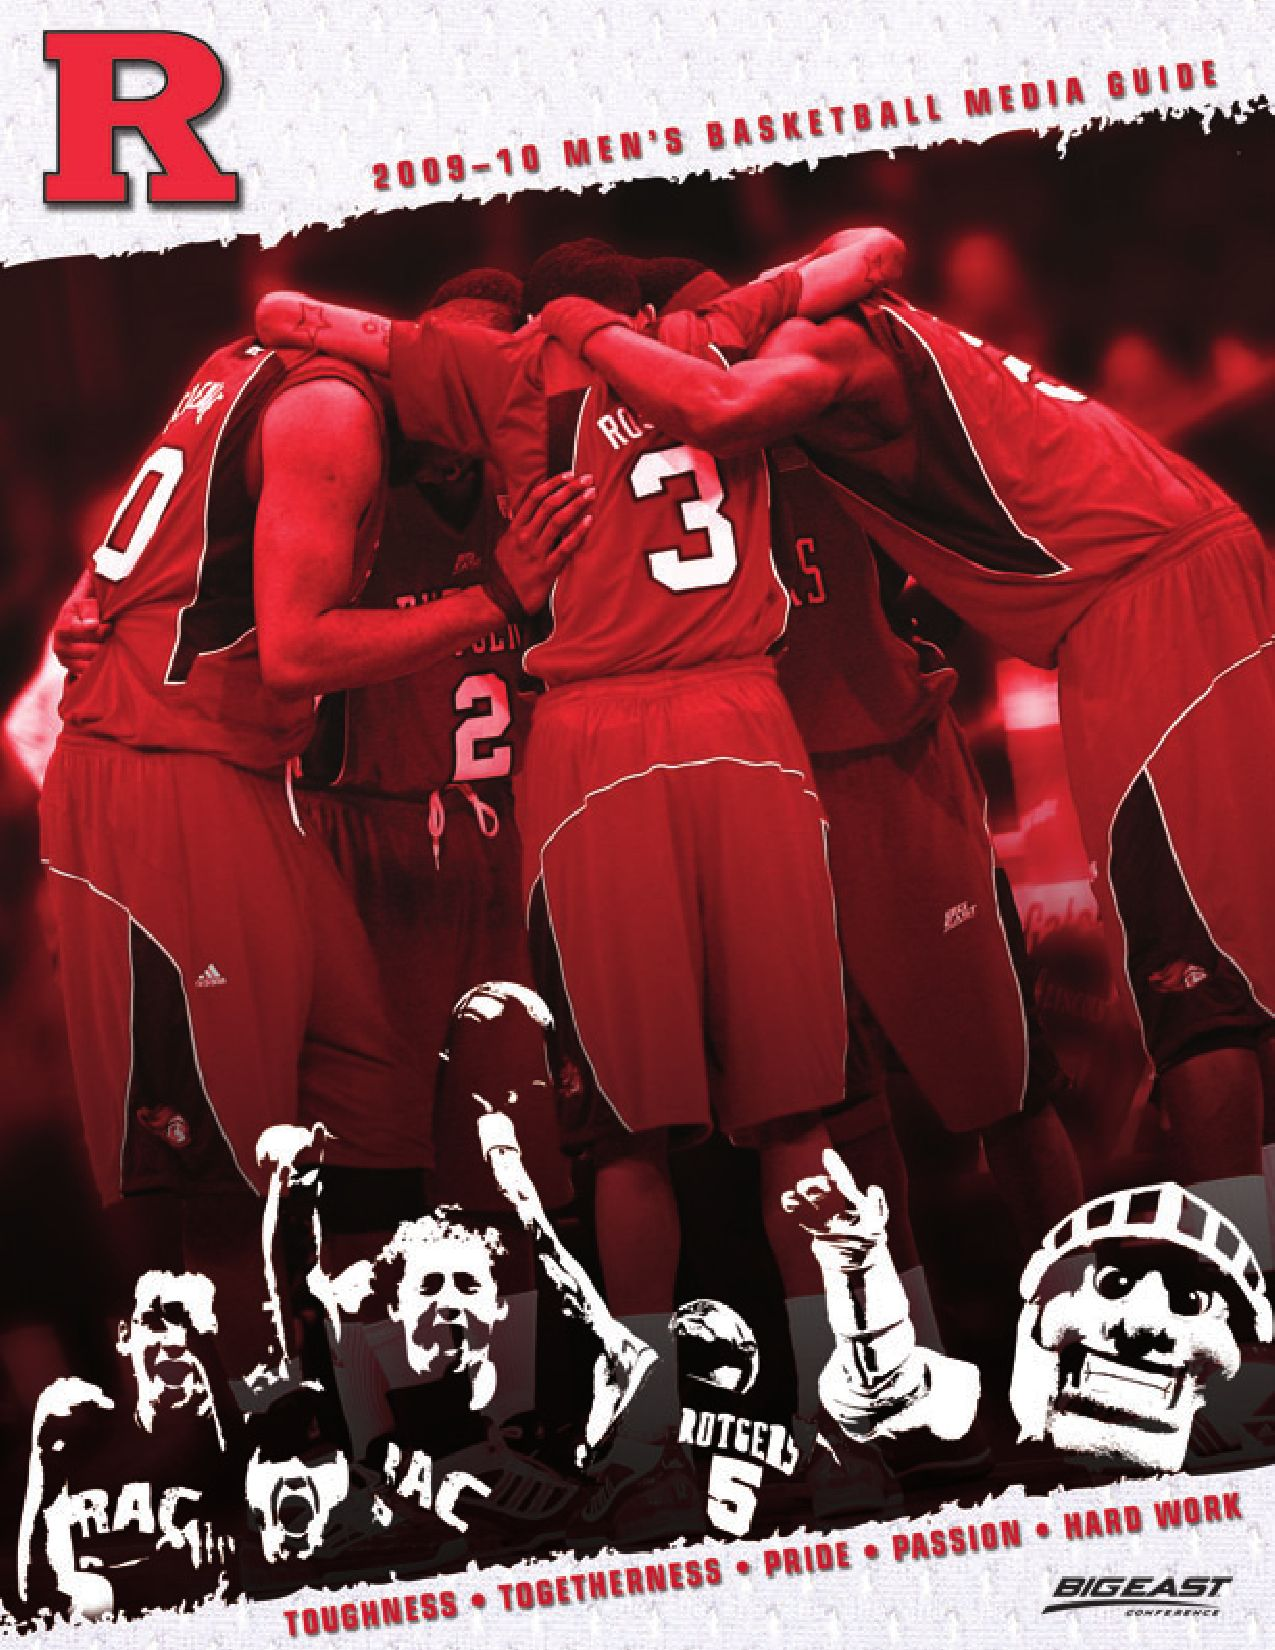 7507bc779 2009-10 Rutgers Men s Basketball Media Guide by Rutgers Athletics - issuu